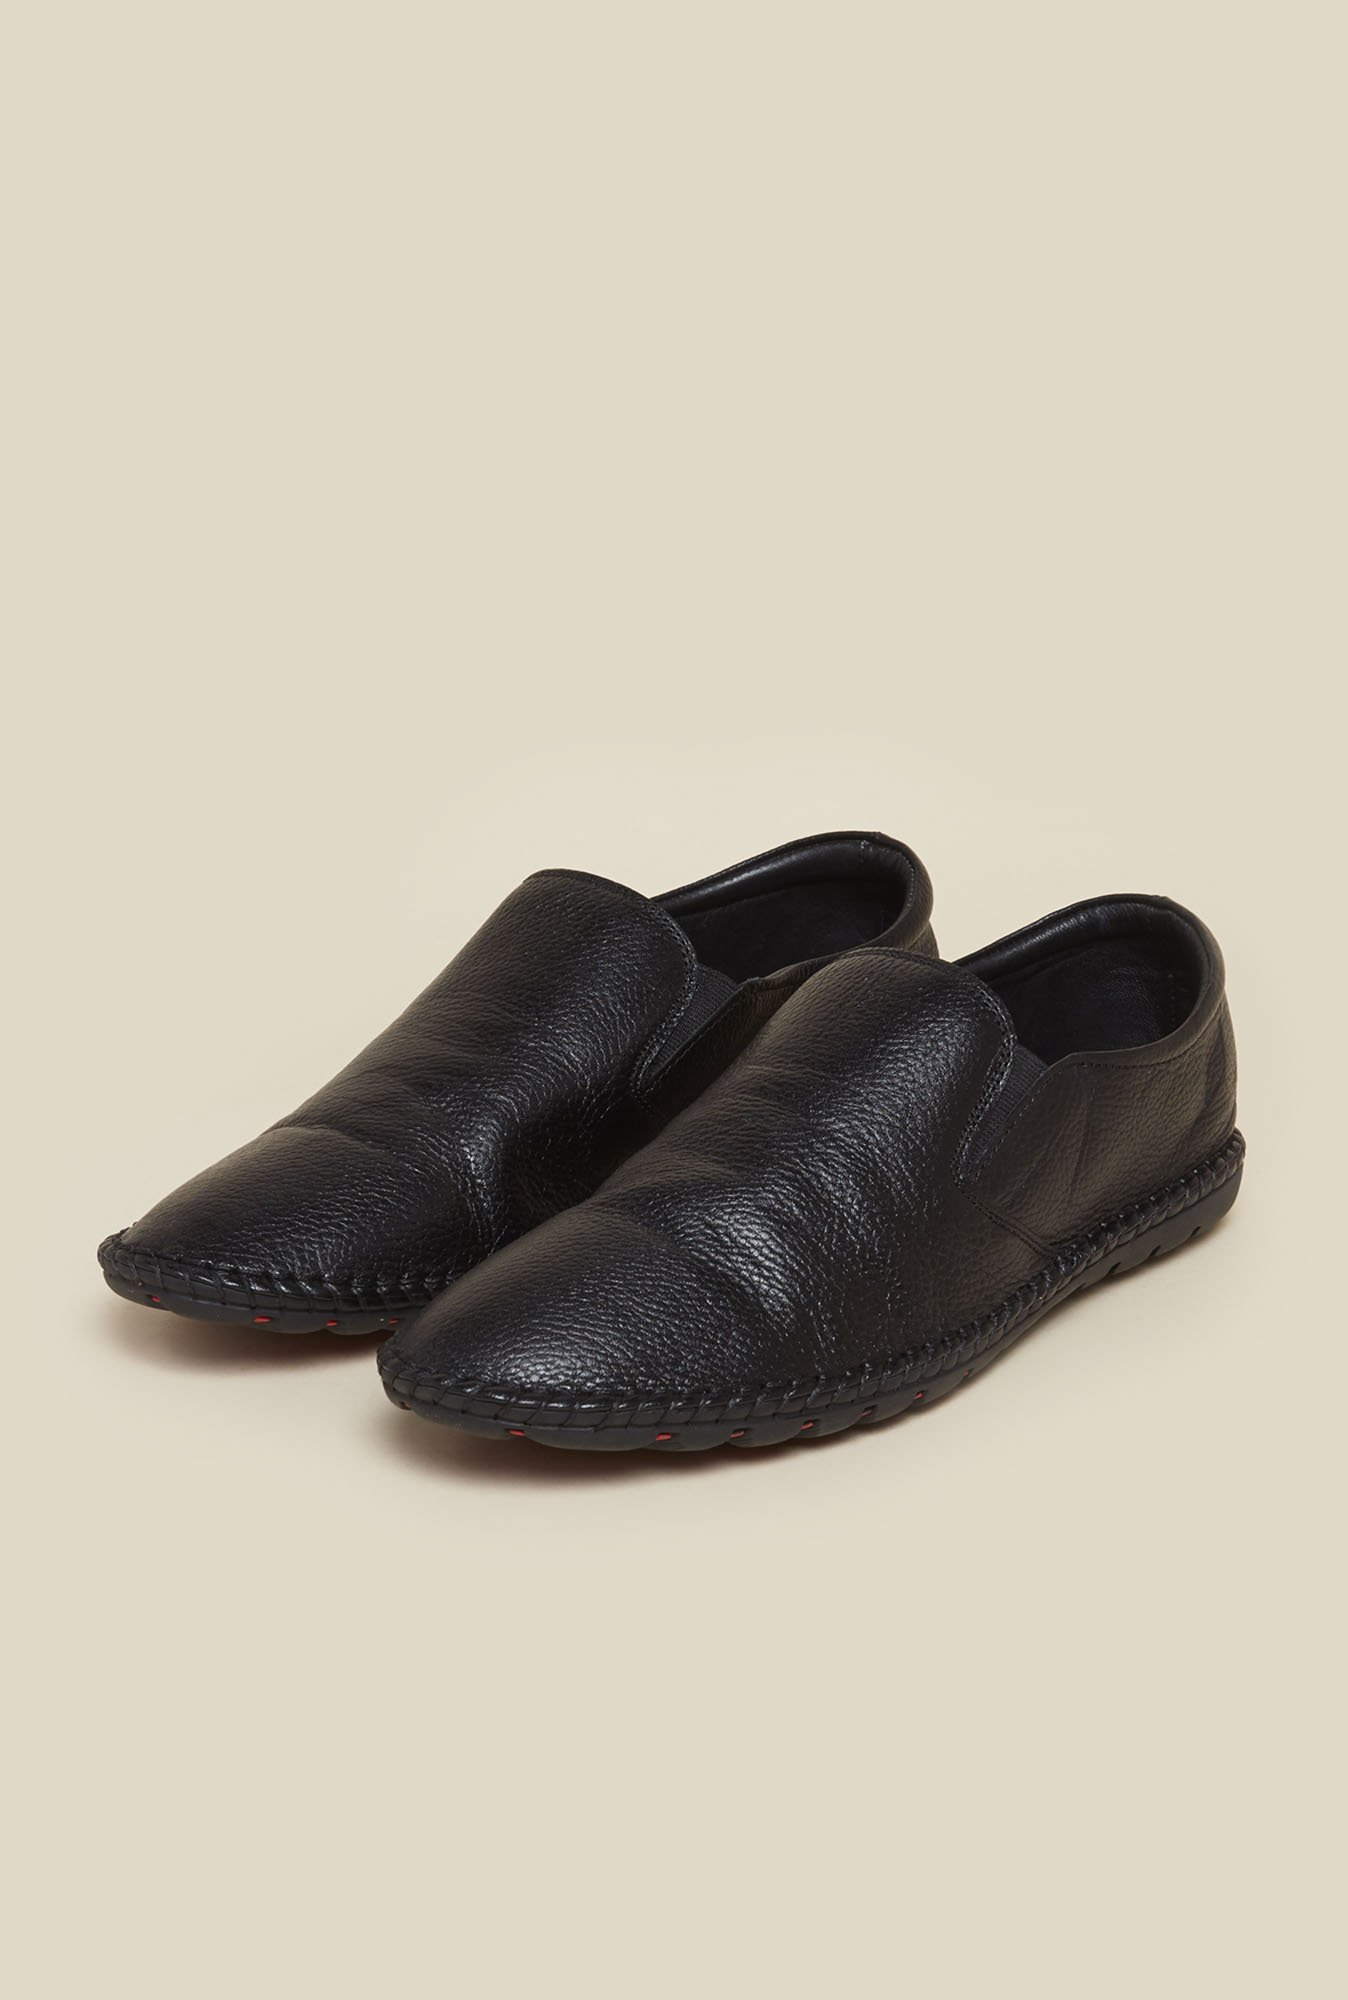 Mochi Black Leather Casual Loafers